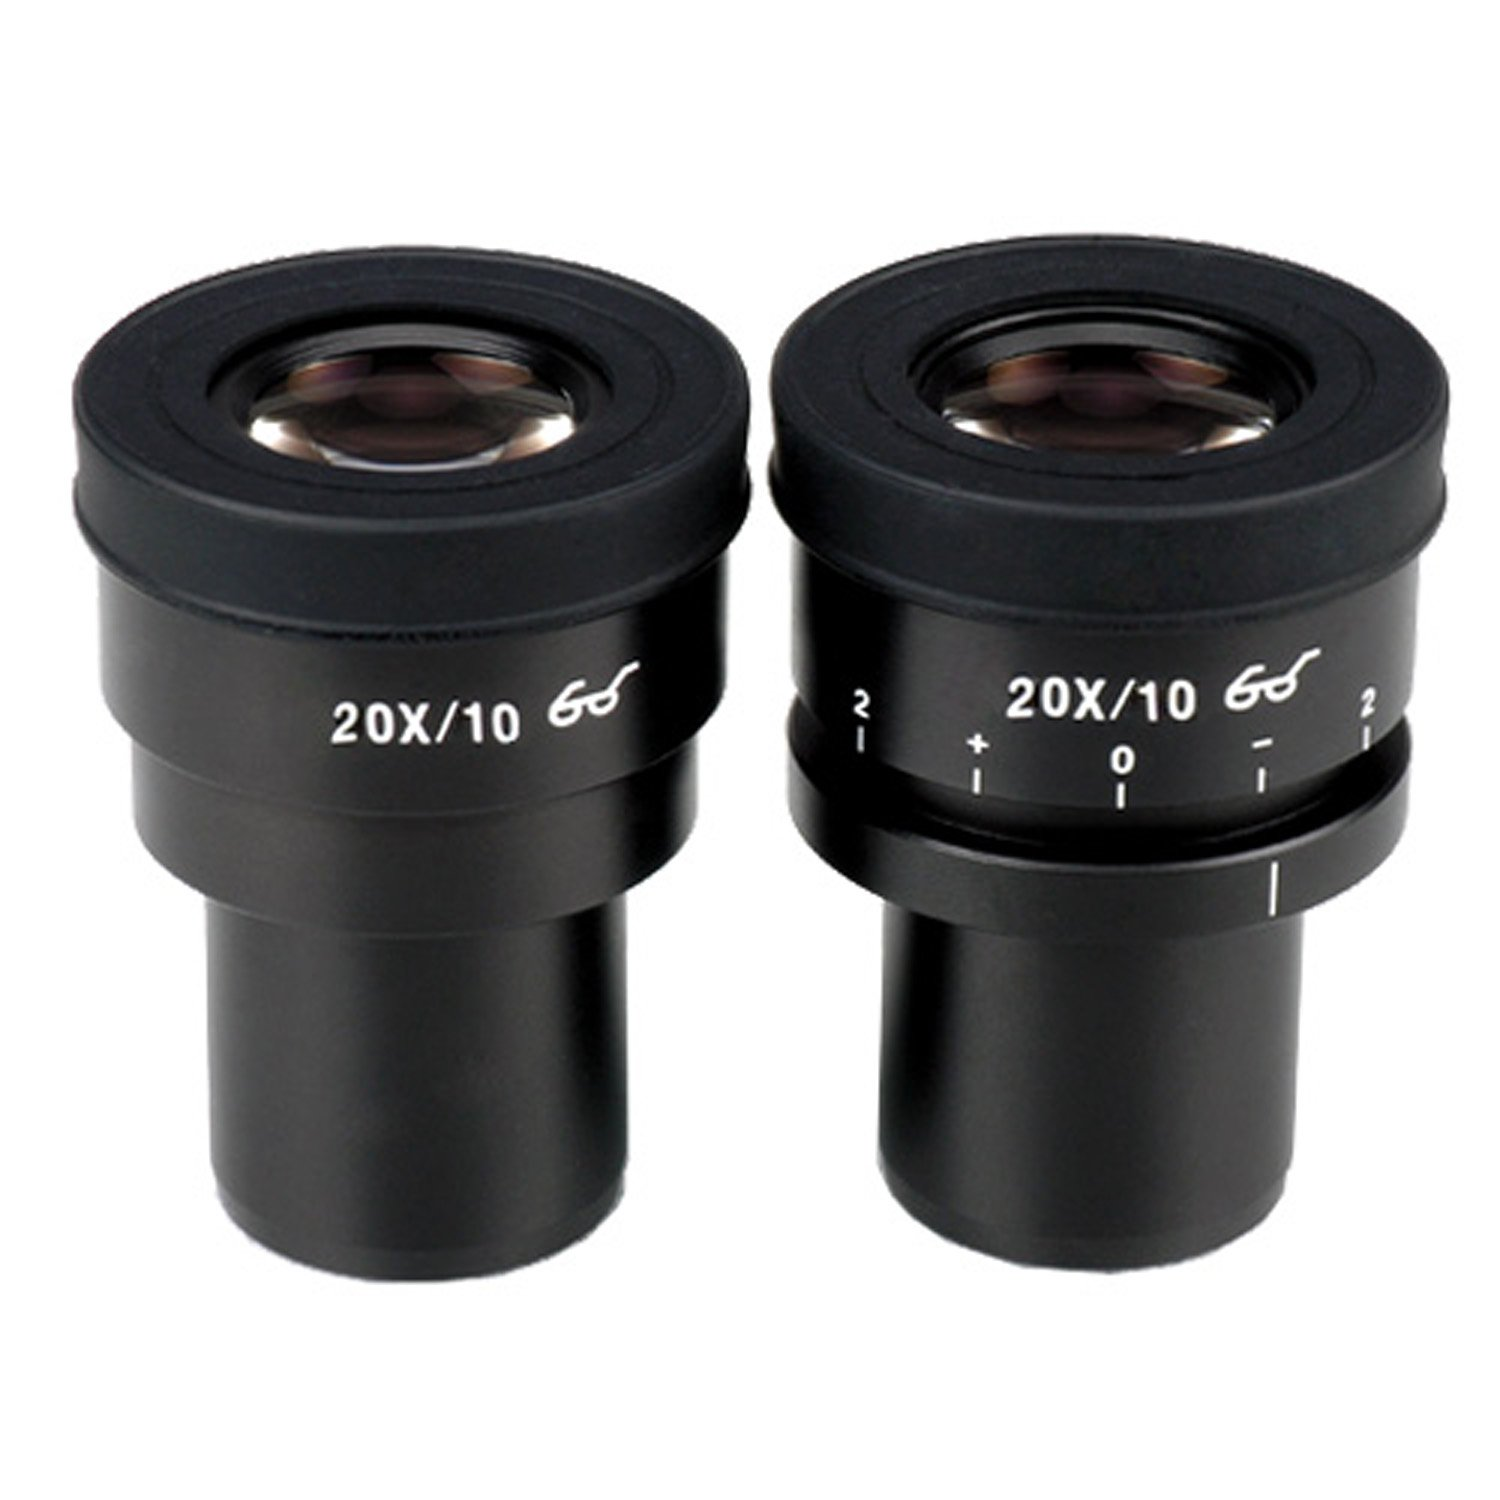 AmScope EP20X30F Pair of Focusable Extreme Widefield 20X Eyepieces (30mm) by AmScope